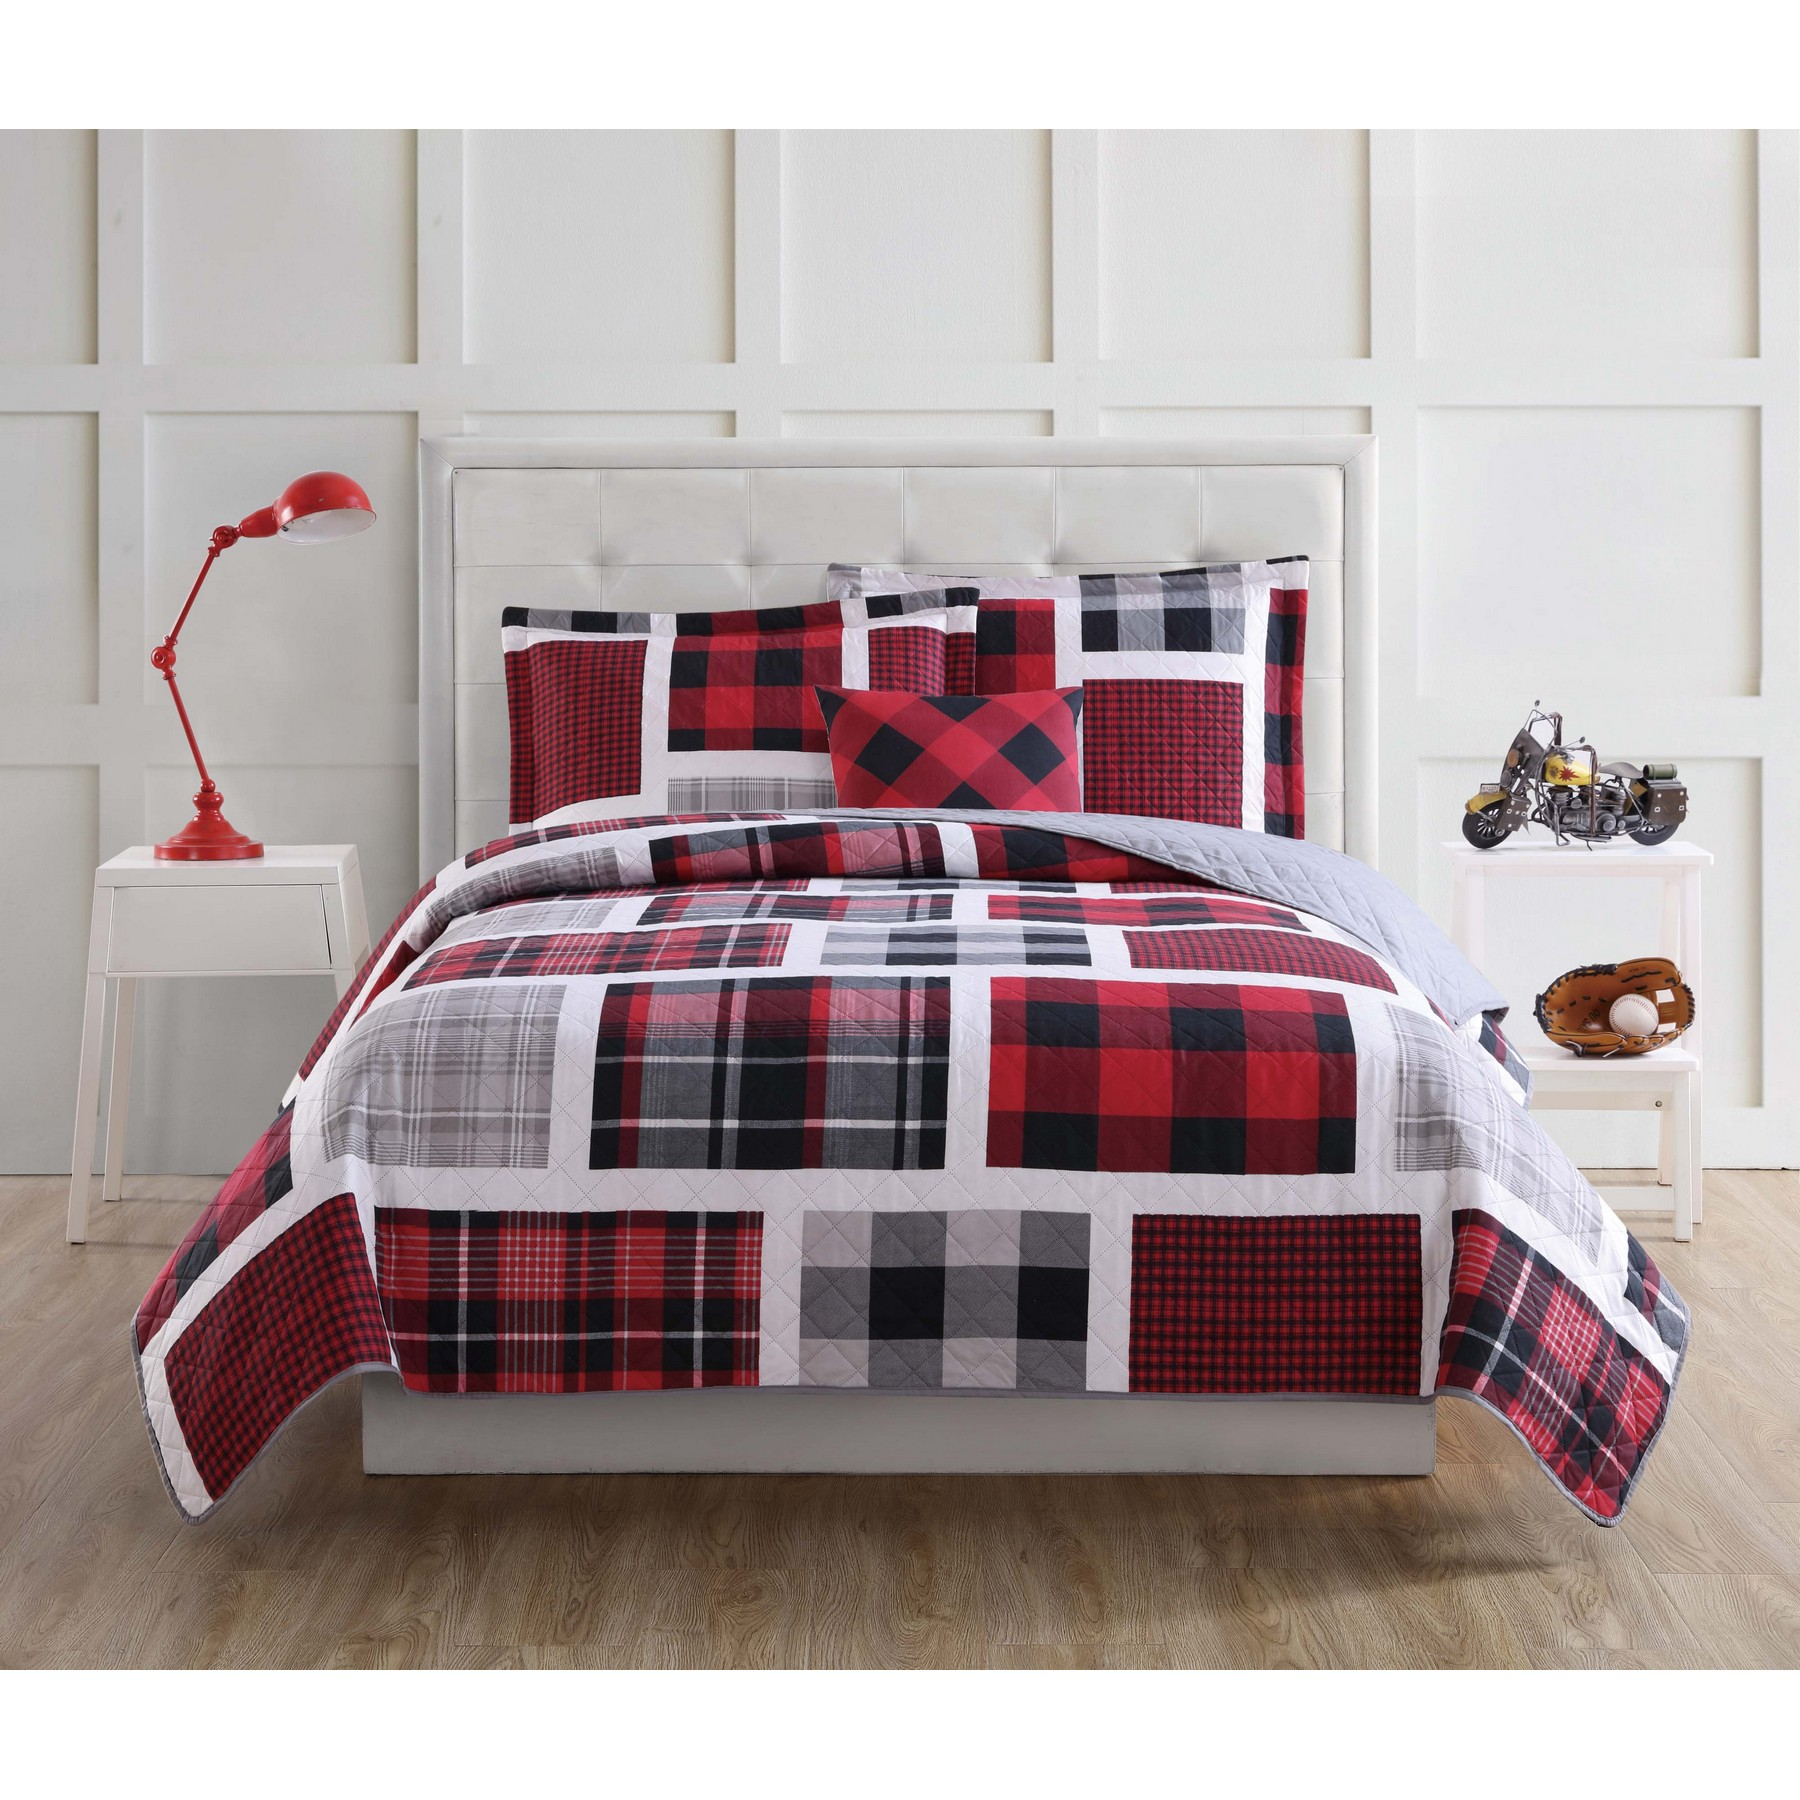 Laura Hart Kids Buffalo Plaid Twin Quilt Set with BONUS Decorative Pillow